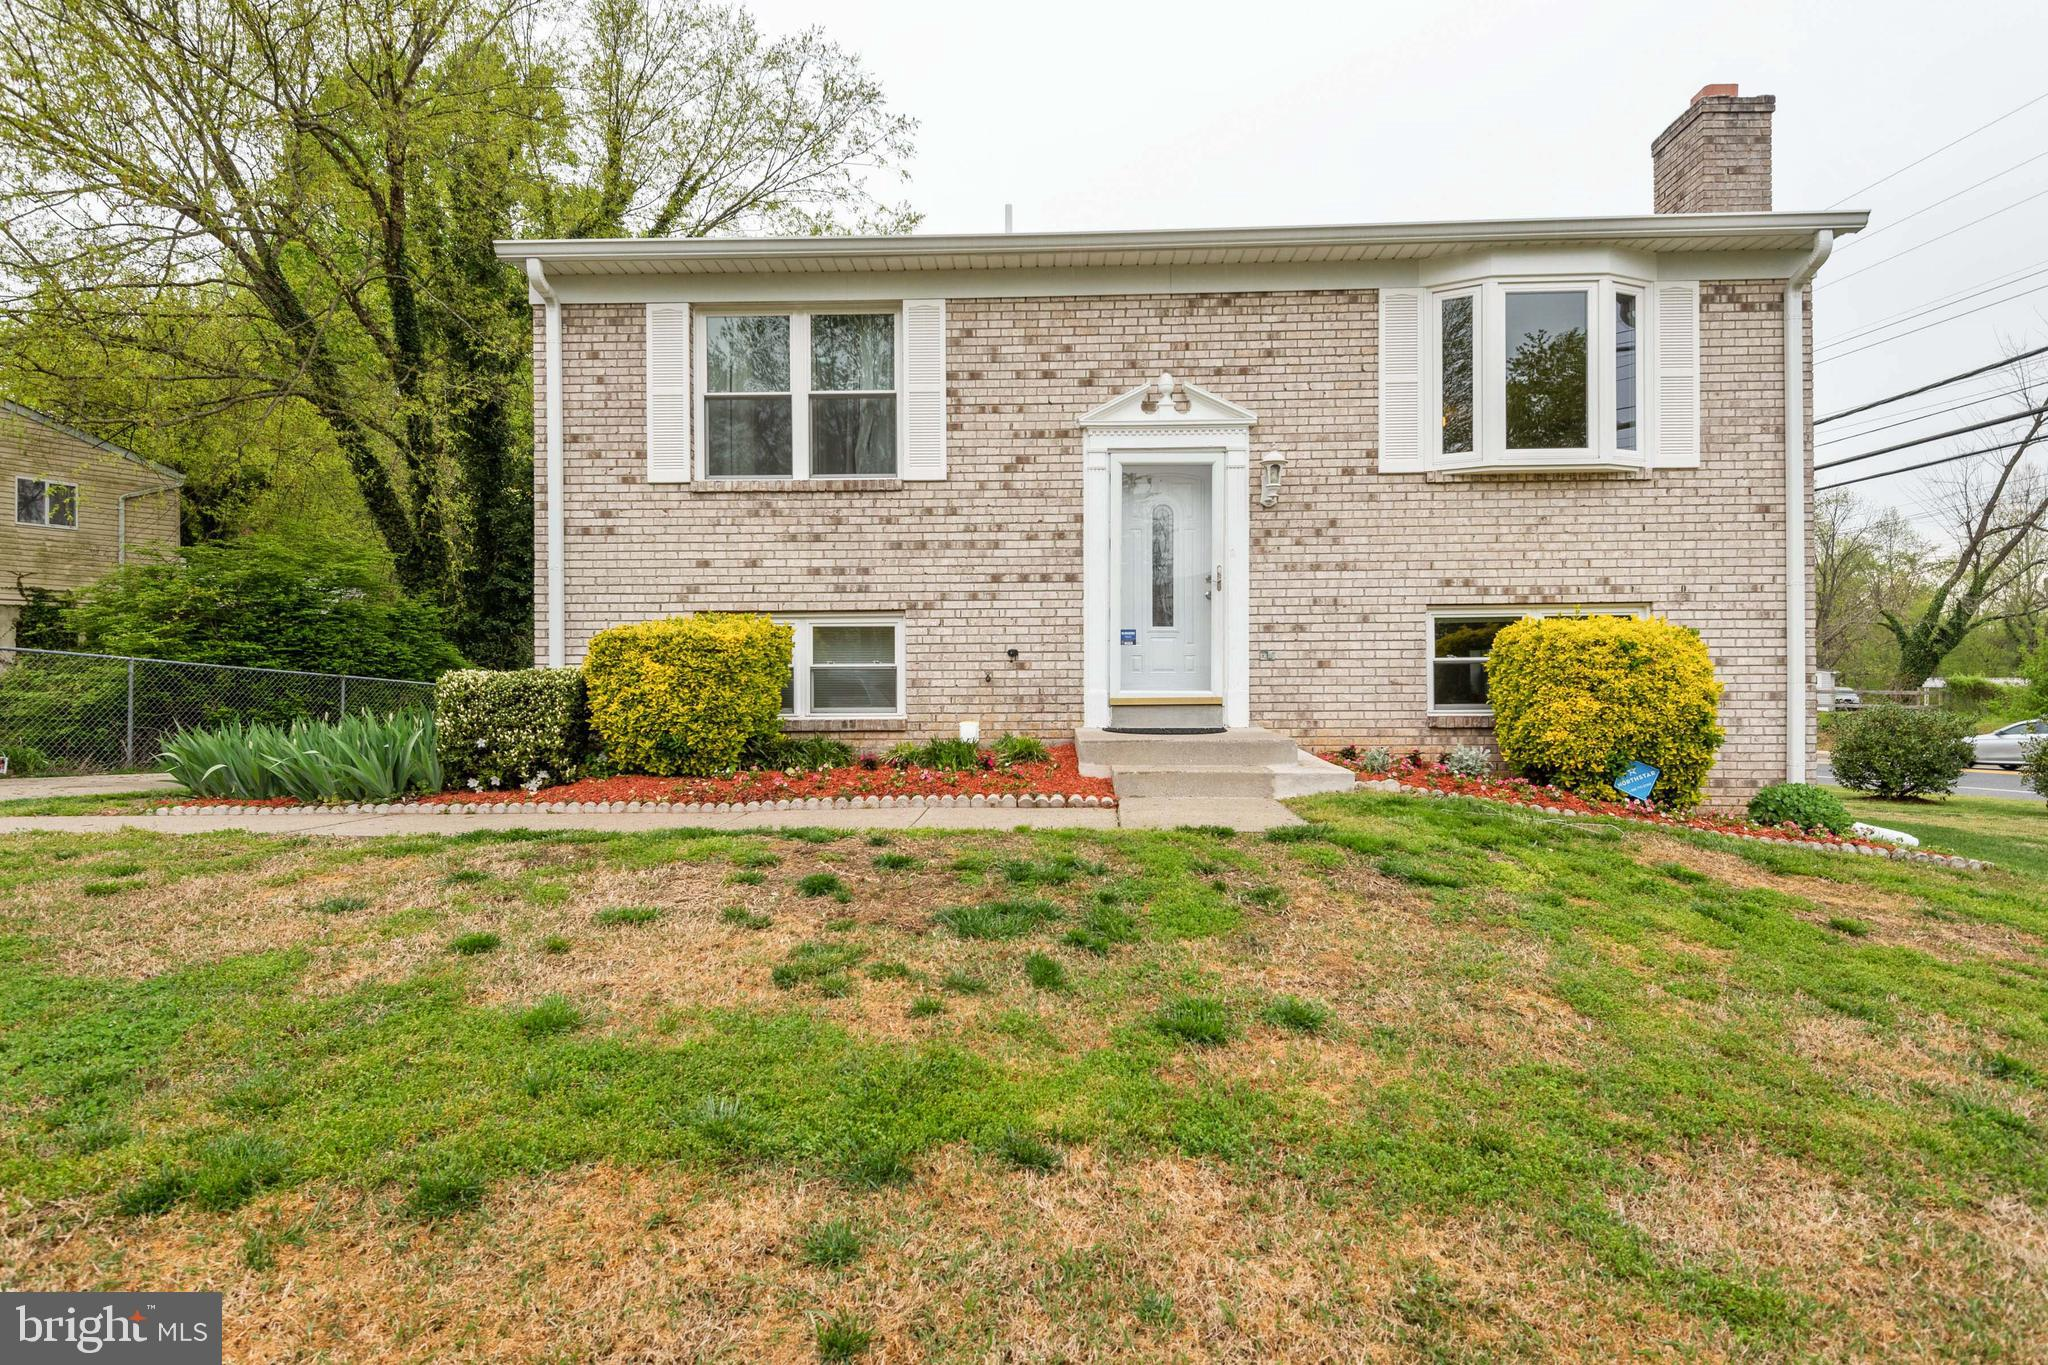 14101 SPRING BRANCH DRIVE, UPPER MARLBORO, Maryland 20772, 3 Bedrooms Bedrooms, ,2 BathroomsBathrooms,Single Family,For Sale,14101 SPRING BRANCH DRIVE,MDPG601856